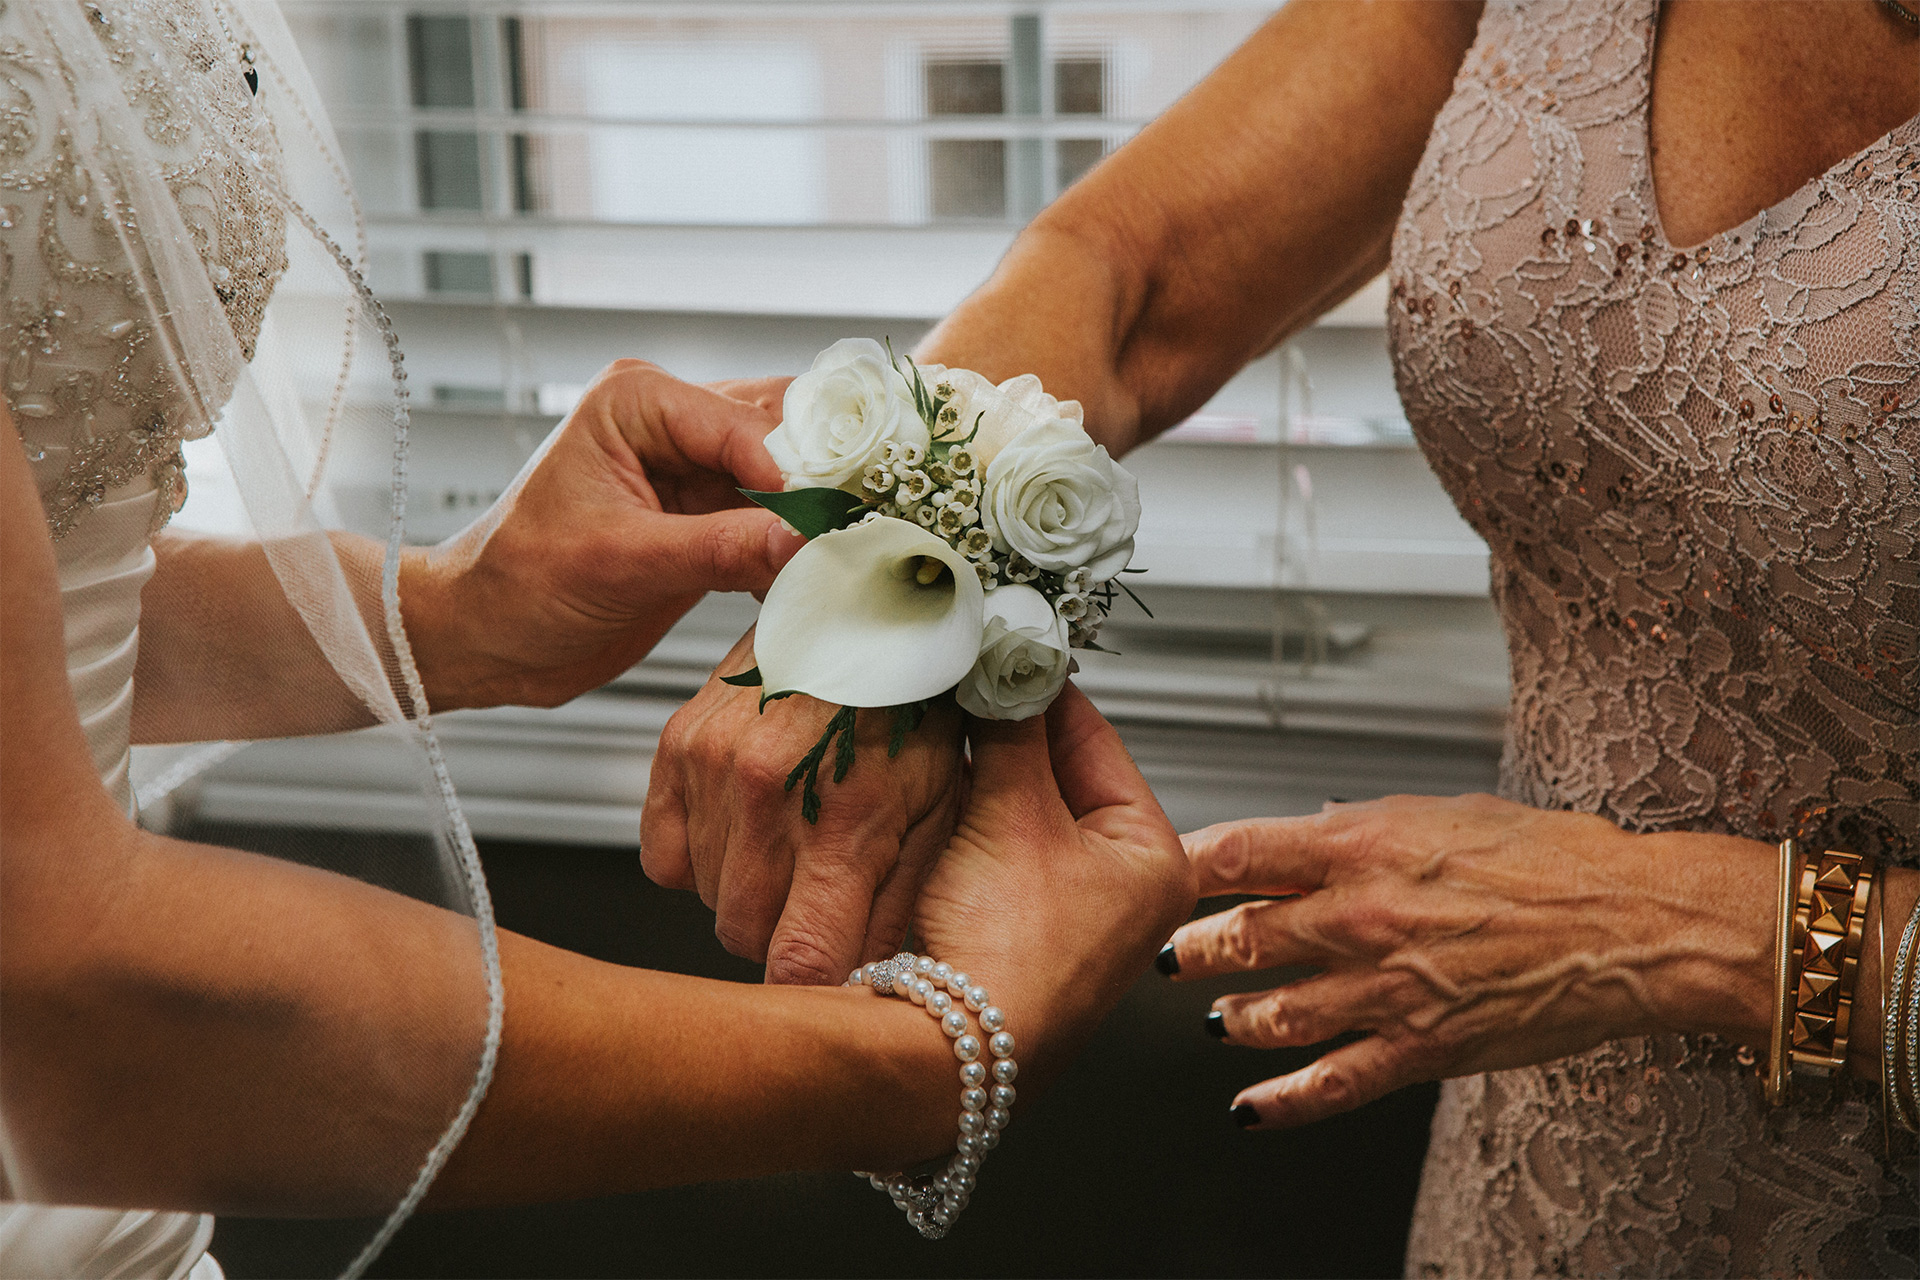 Bride helping mother of the bride put on a beautiful floral corsage on her wrist.